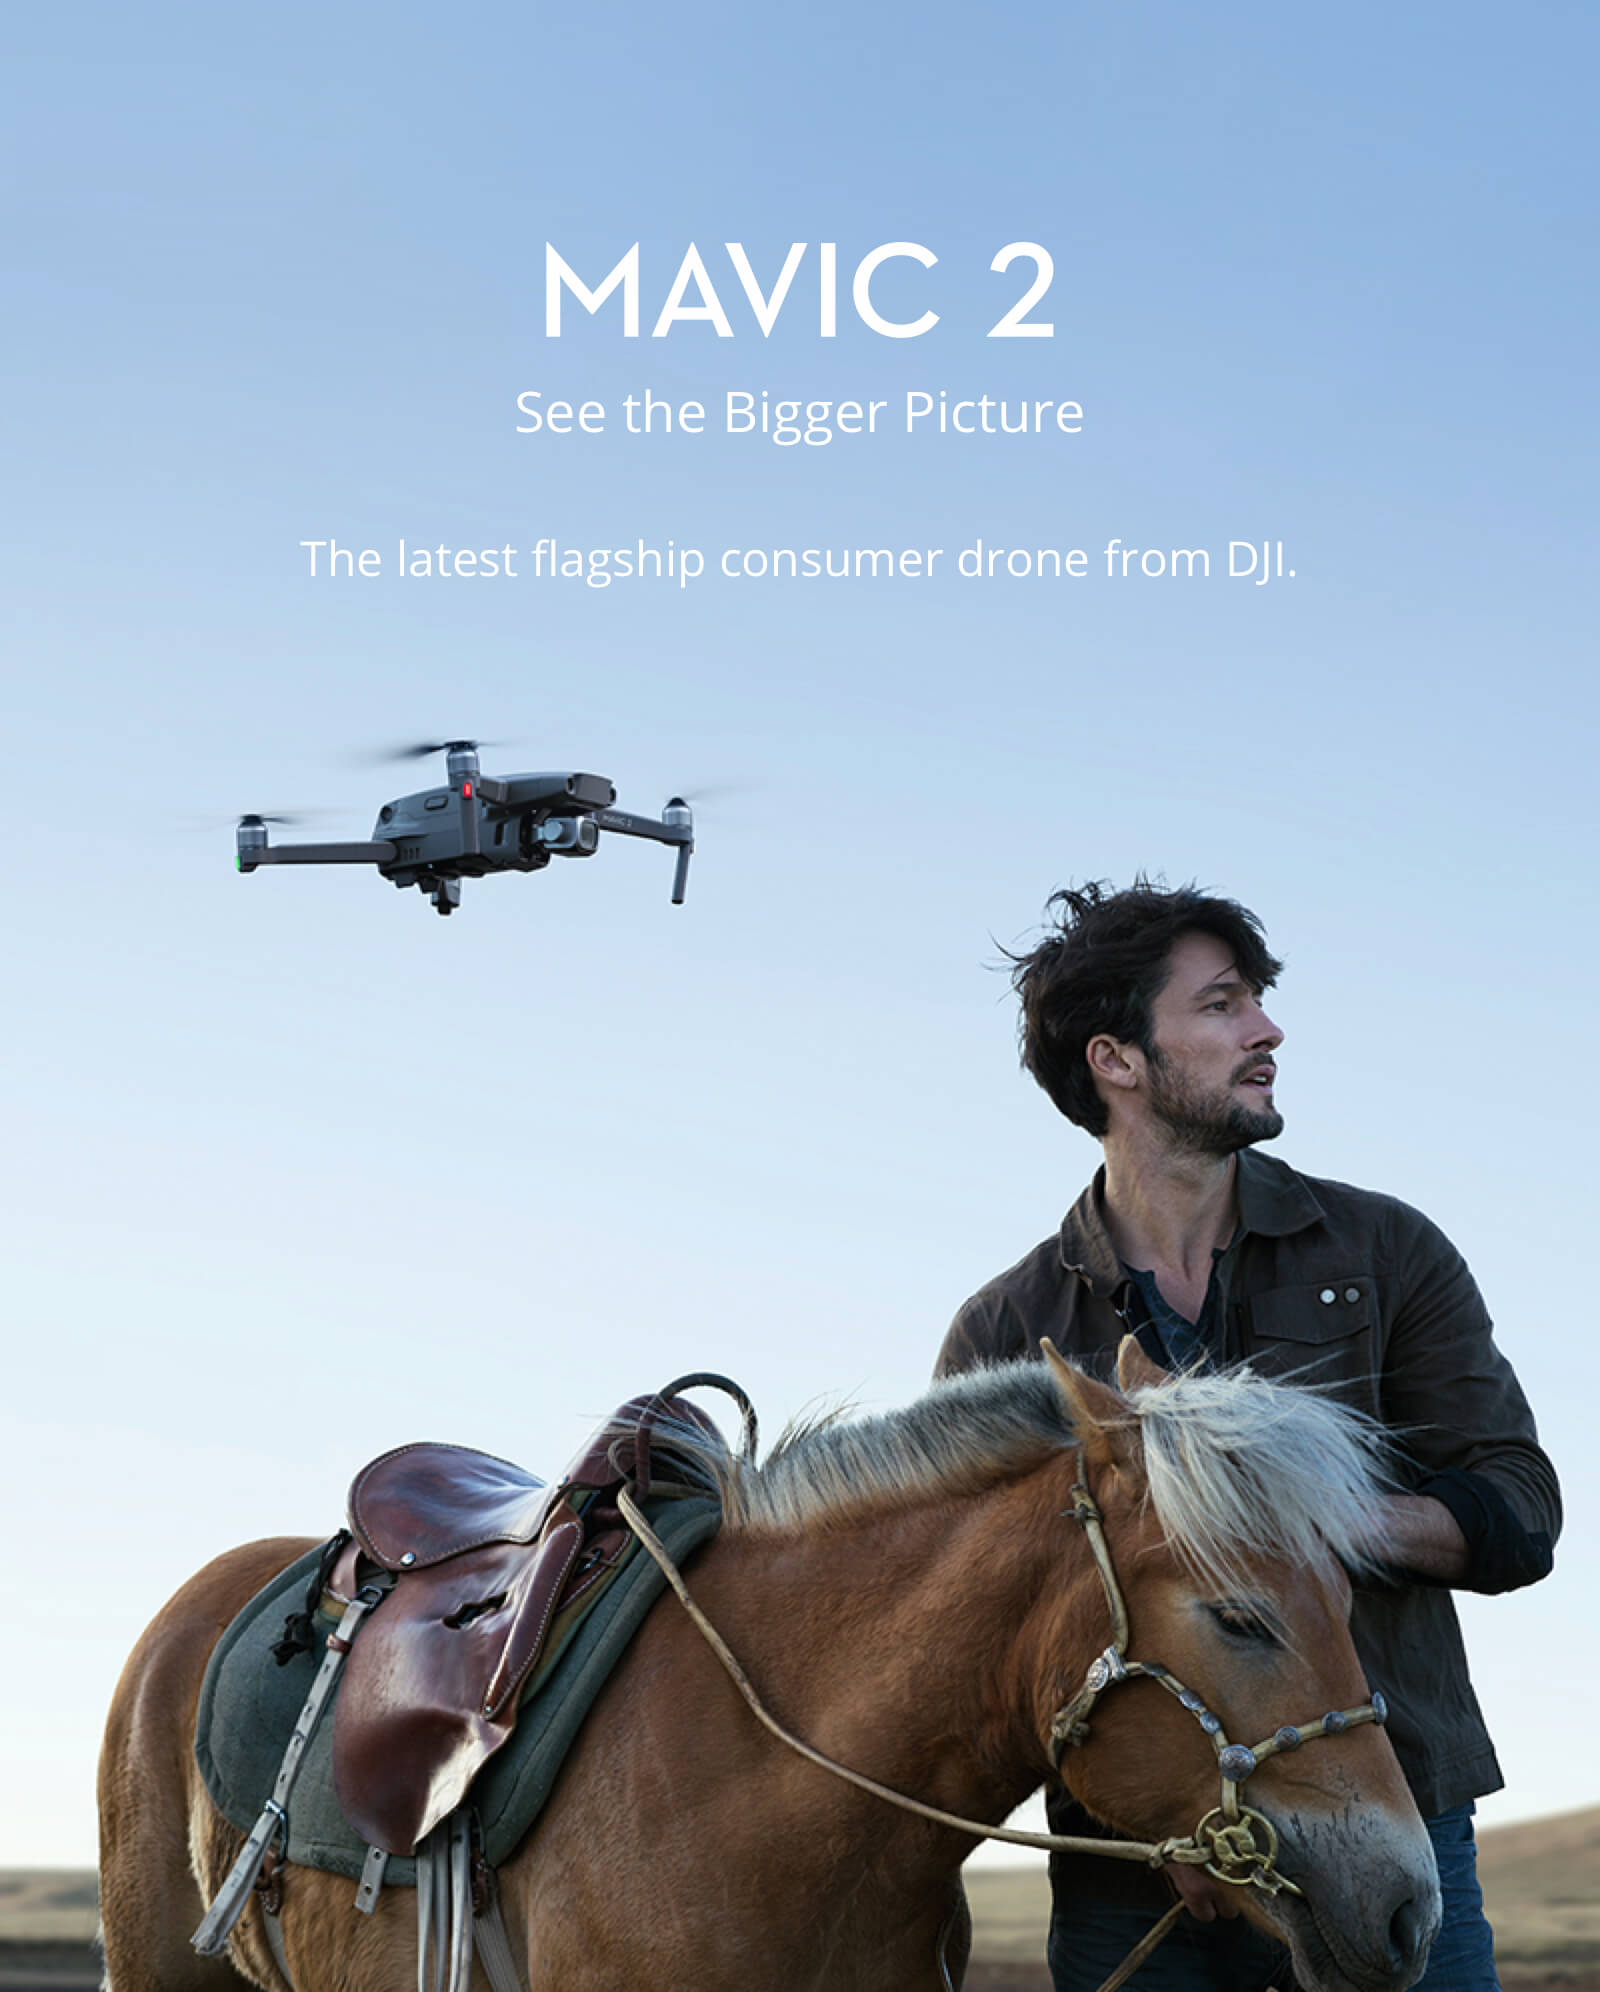 DJI MAVIC 2 ZOOM DRONE QUADCOPTER WITH FLY MORE KIT COMBO